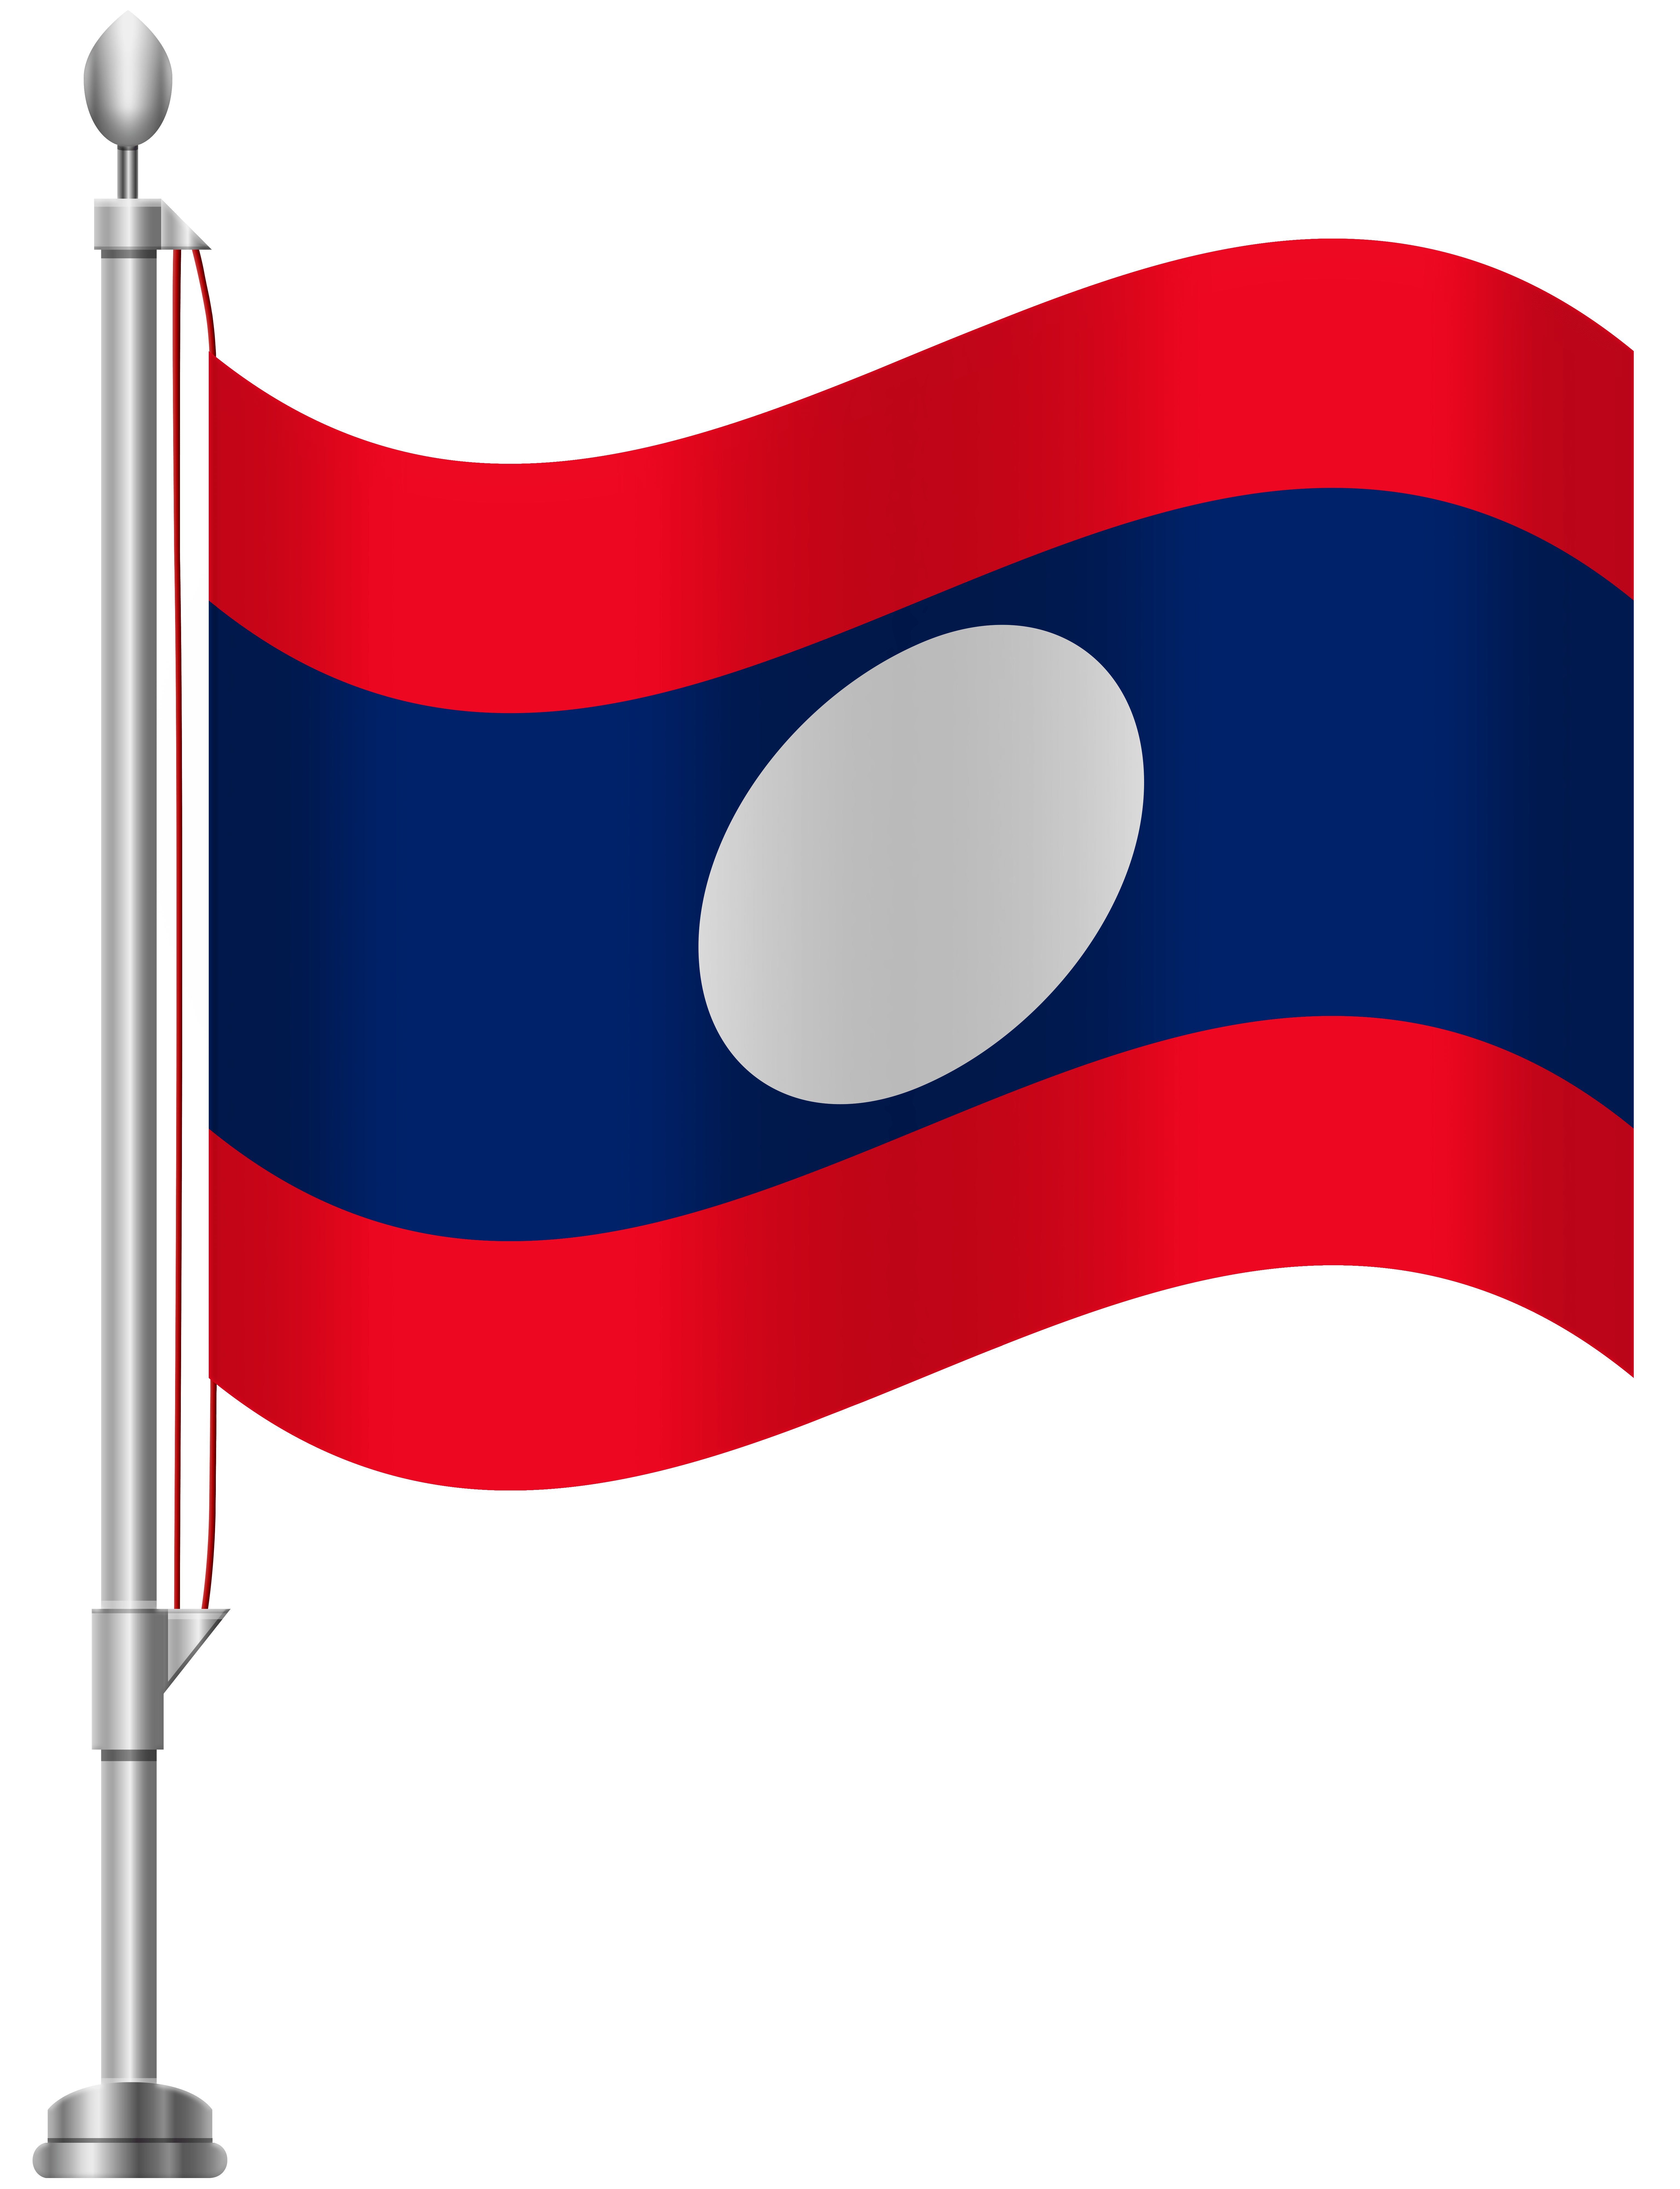 Laos Flag Transparent & PNG Clipart Free Download - YA-webdesign